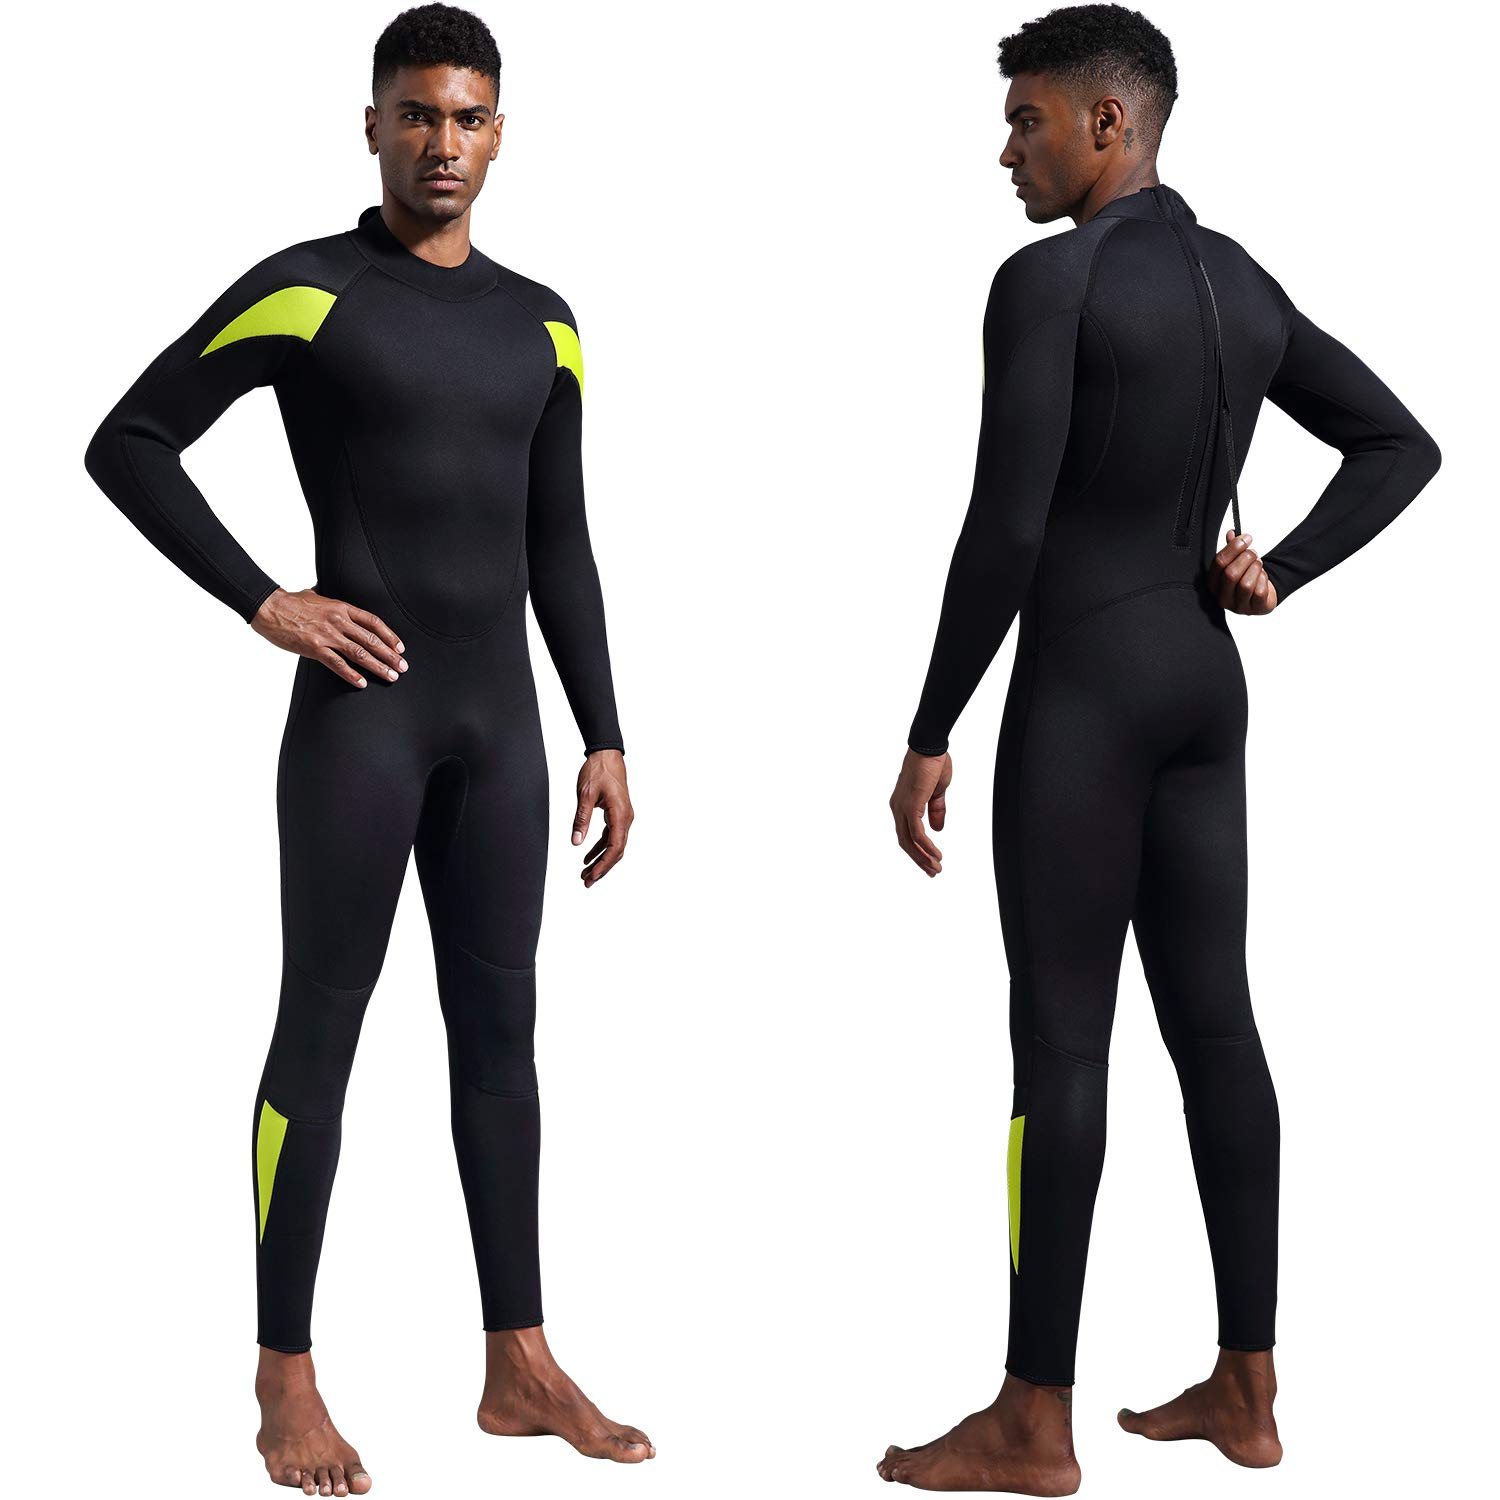 dark lightning Mens 3mm Full Suit Wetsuit for Scuba Diving, Snorkeling Surfing Thick and Warm Jumpsuit for Multi Watersports(M Size) by Dark Lightning